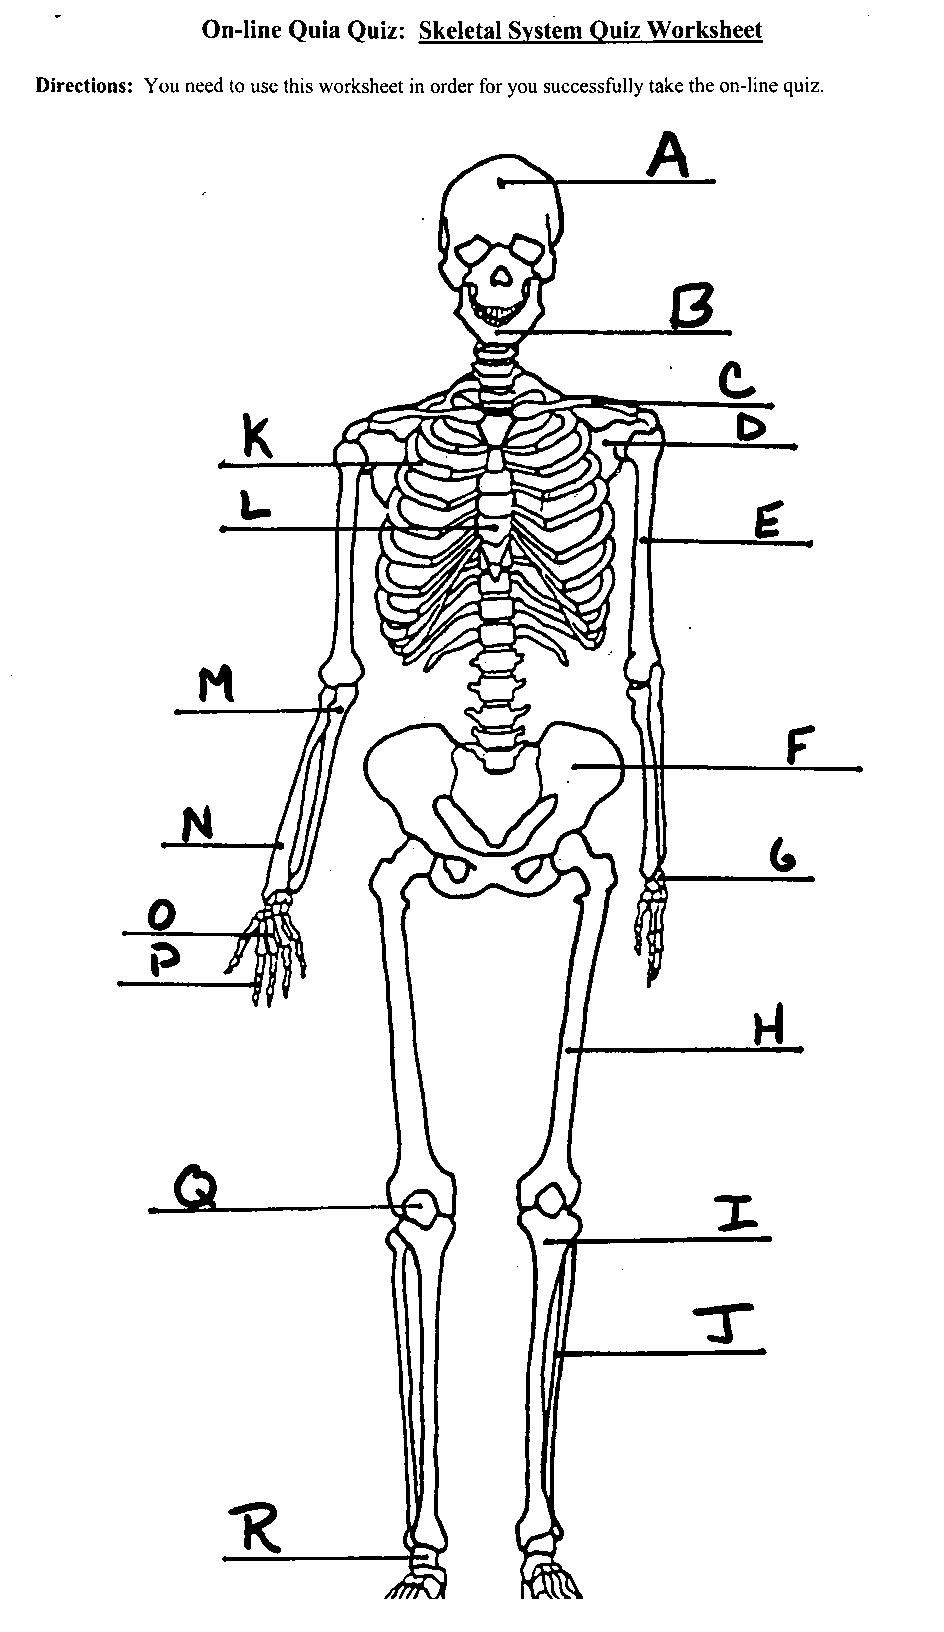 Image Result For Skeletal System Labeled Human Skeleton